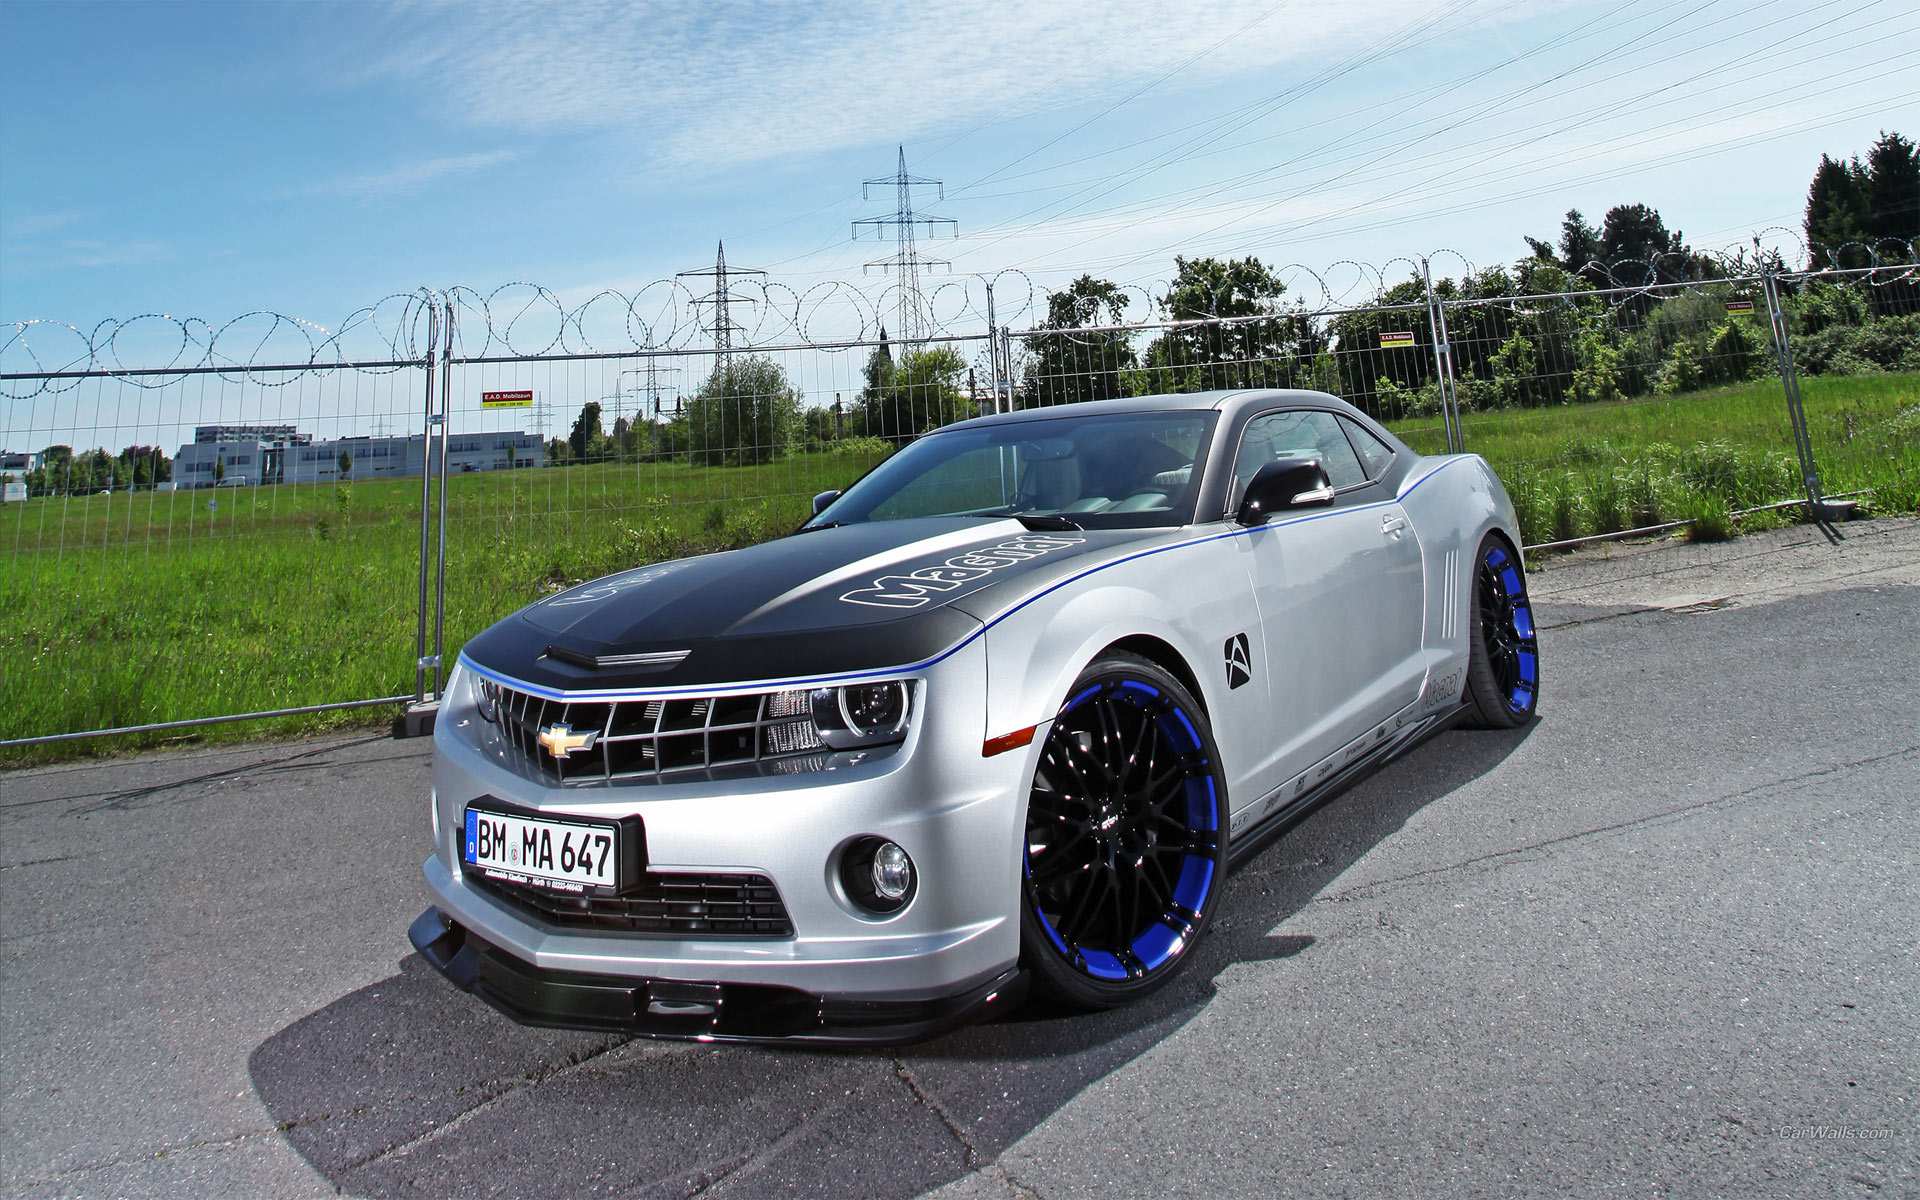 chevrolet camaro 2012 chevy muscle cars tuning roads. Black Bedroom Furniture Sets. Home Design Ideas